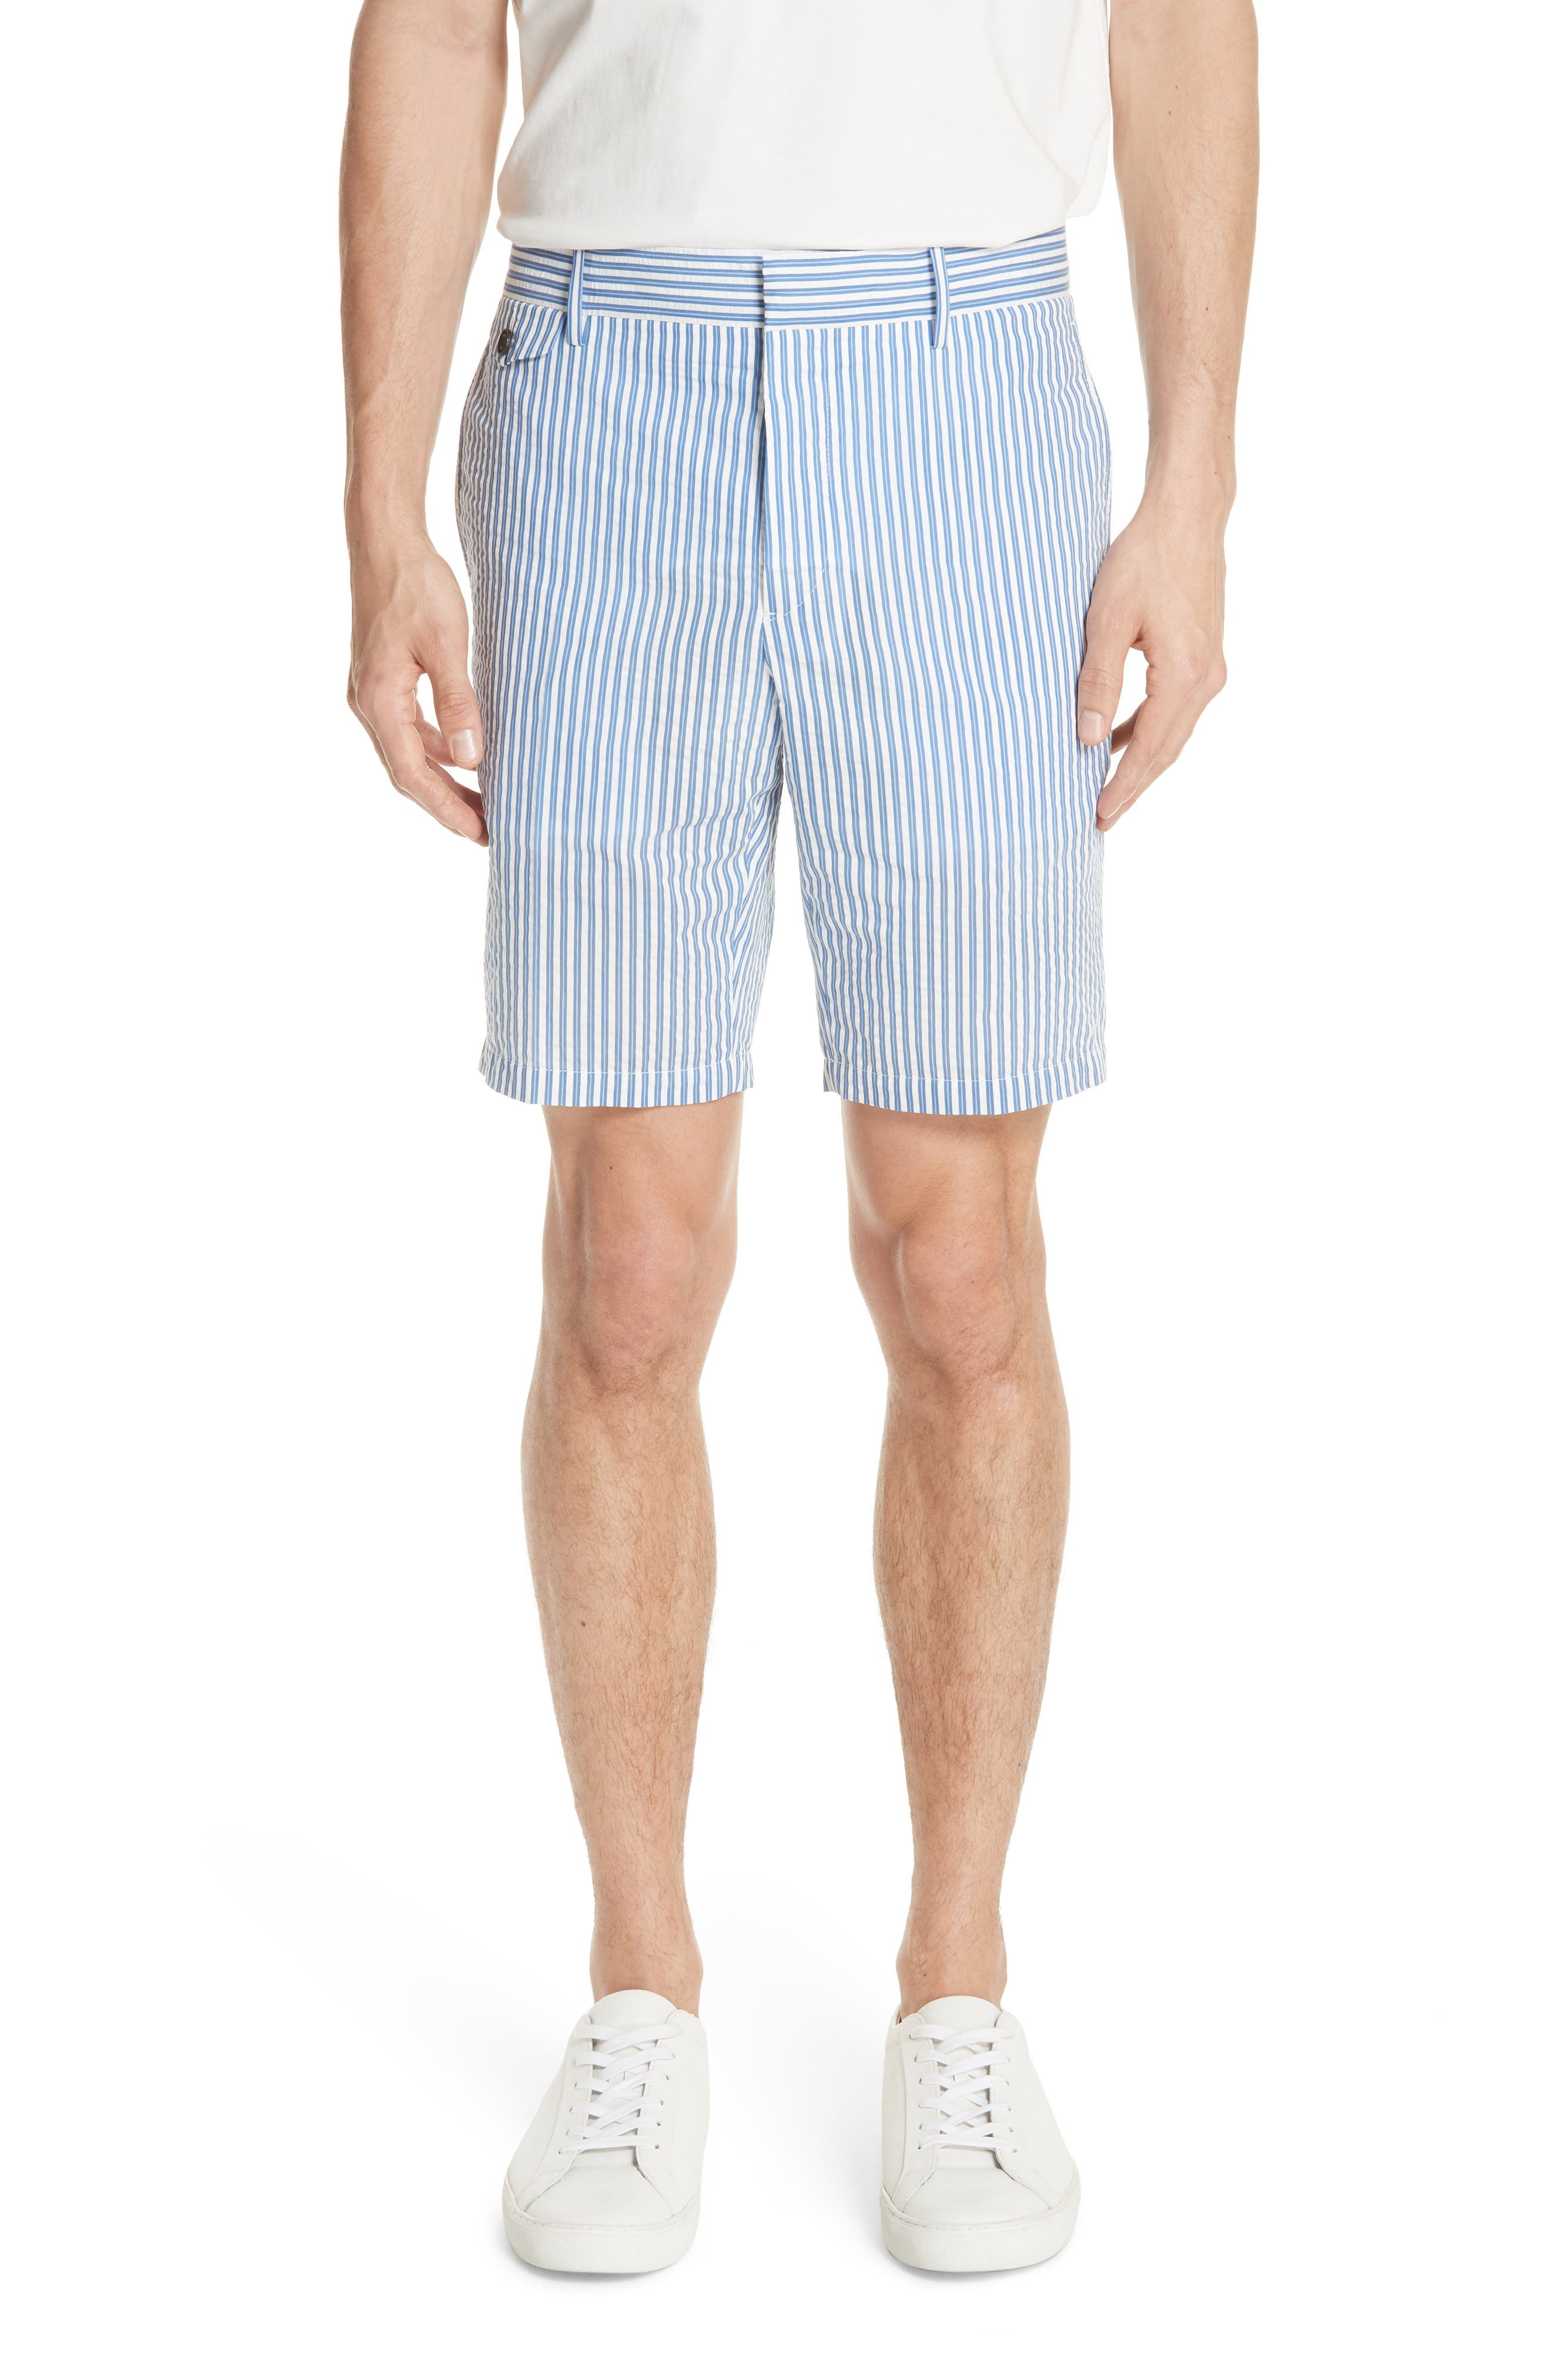 Serpentine Stripe Shorts,                         Main,                         color, Navy